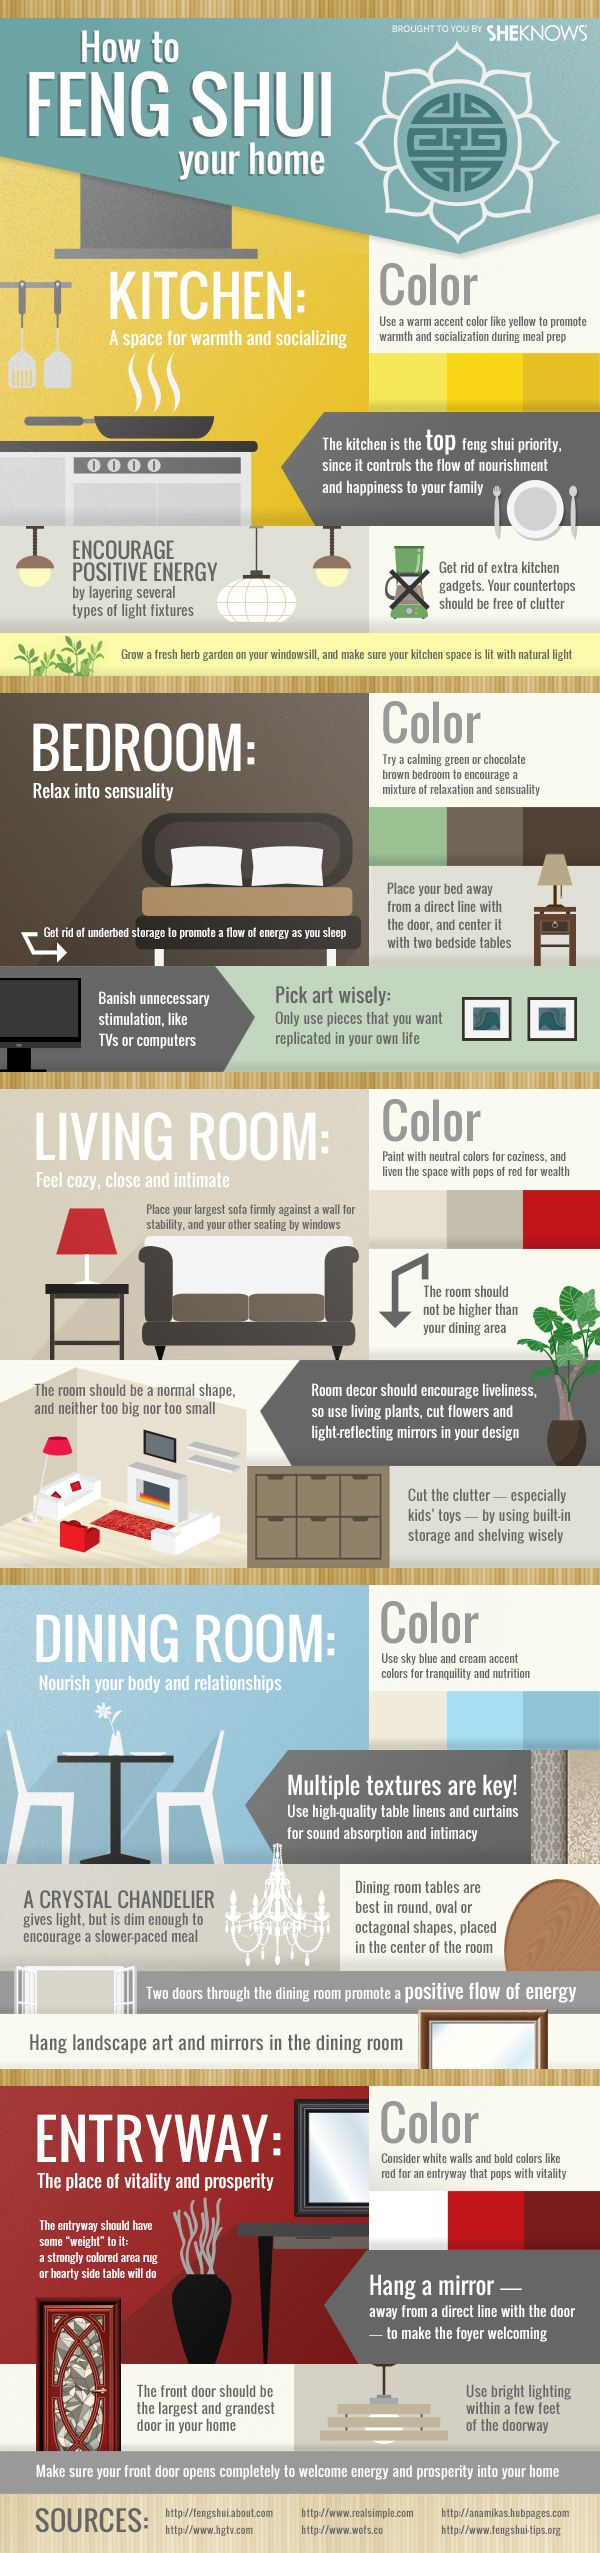 A room by room guide to feng shui your home . Easy feng shui